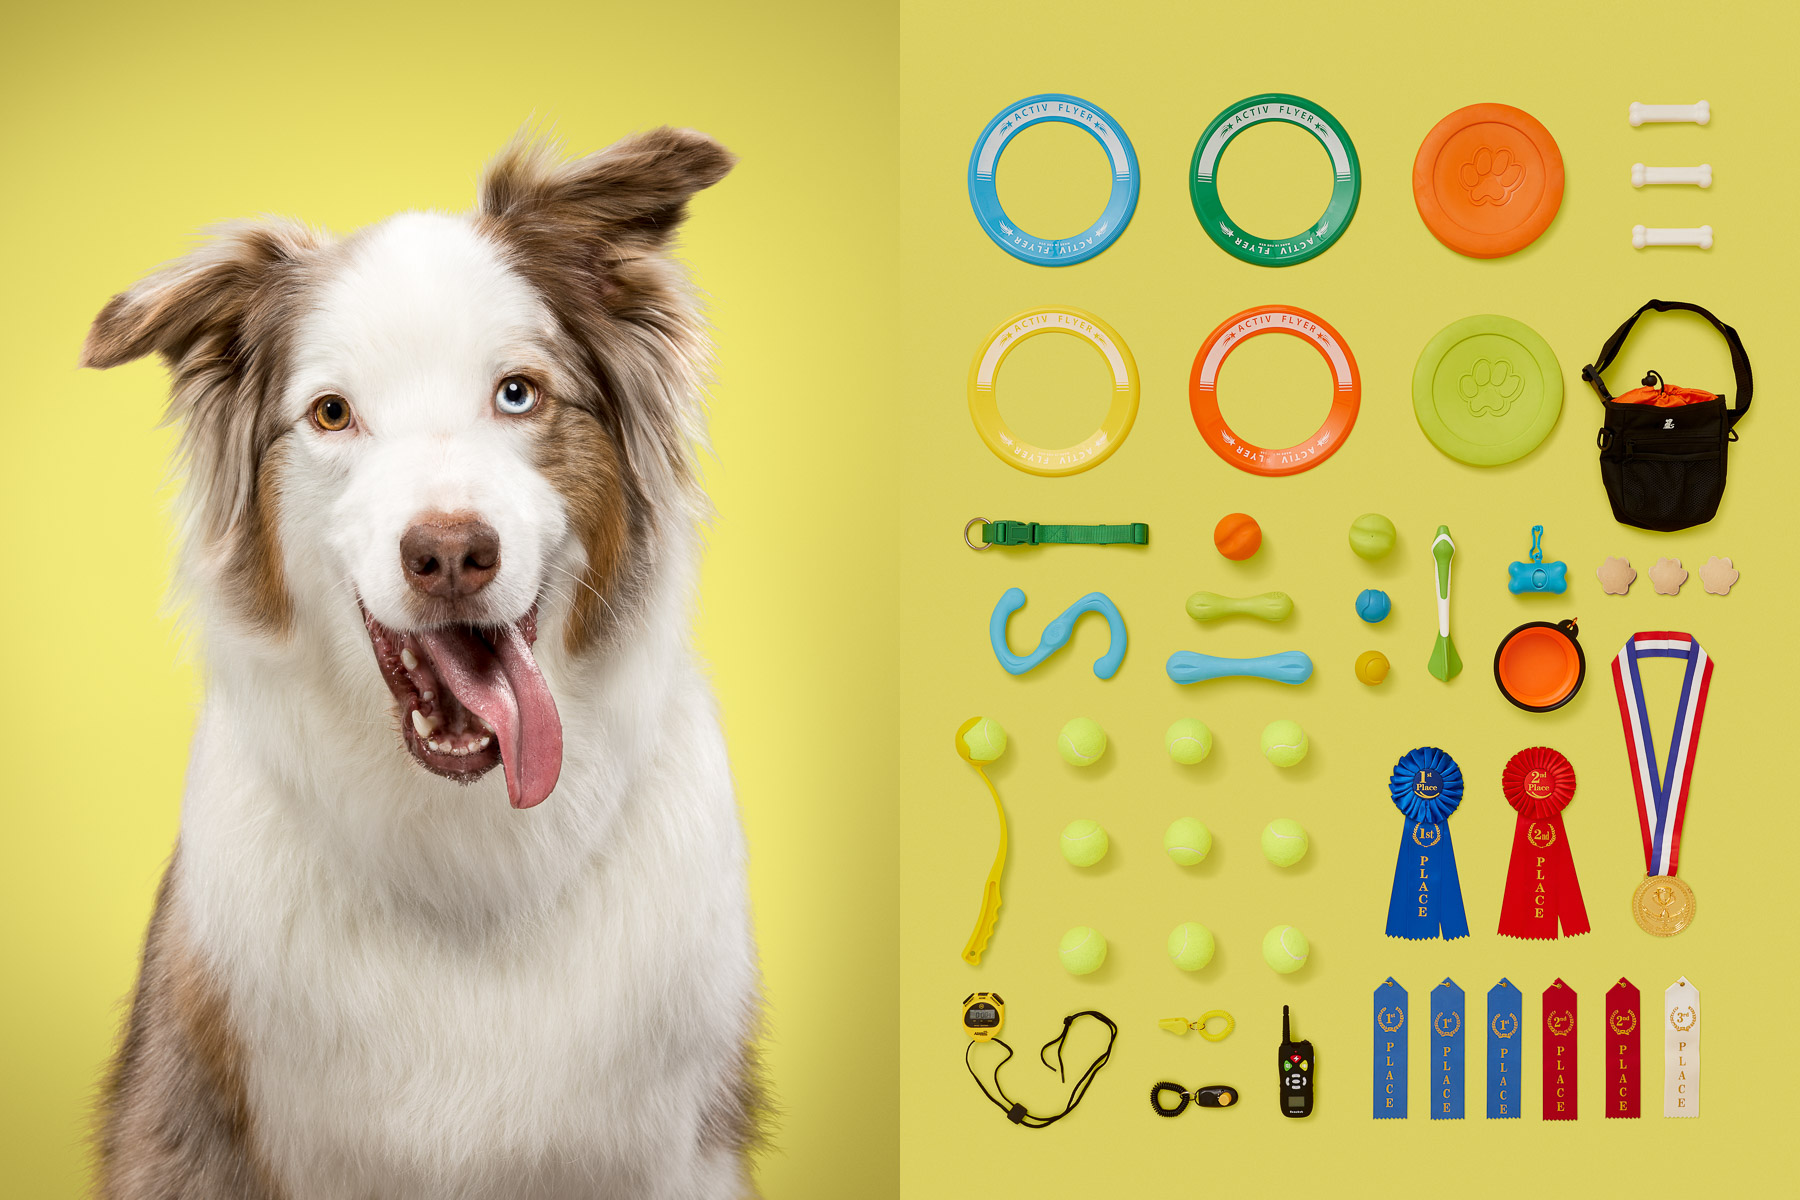 Sports-australian-sheperd-dog-portrait-series-knolling-sports-frisbees-dog-fetching-competition-pet-photographer.jpg